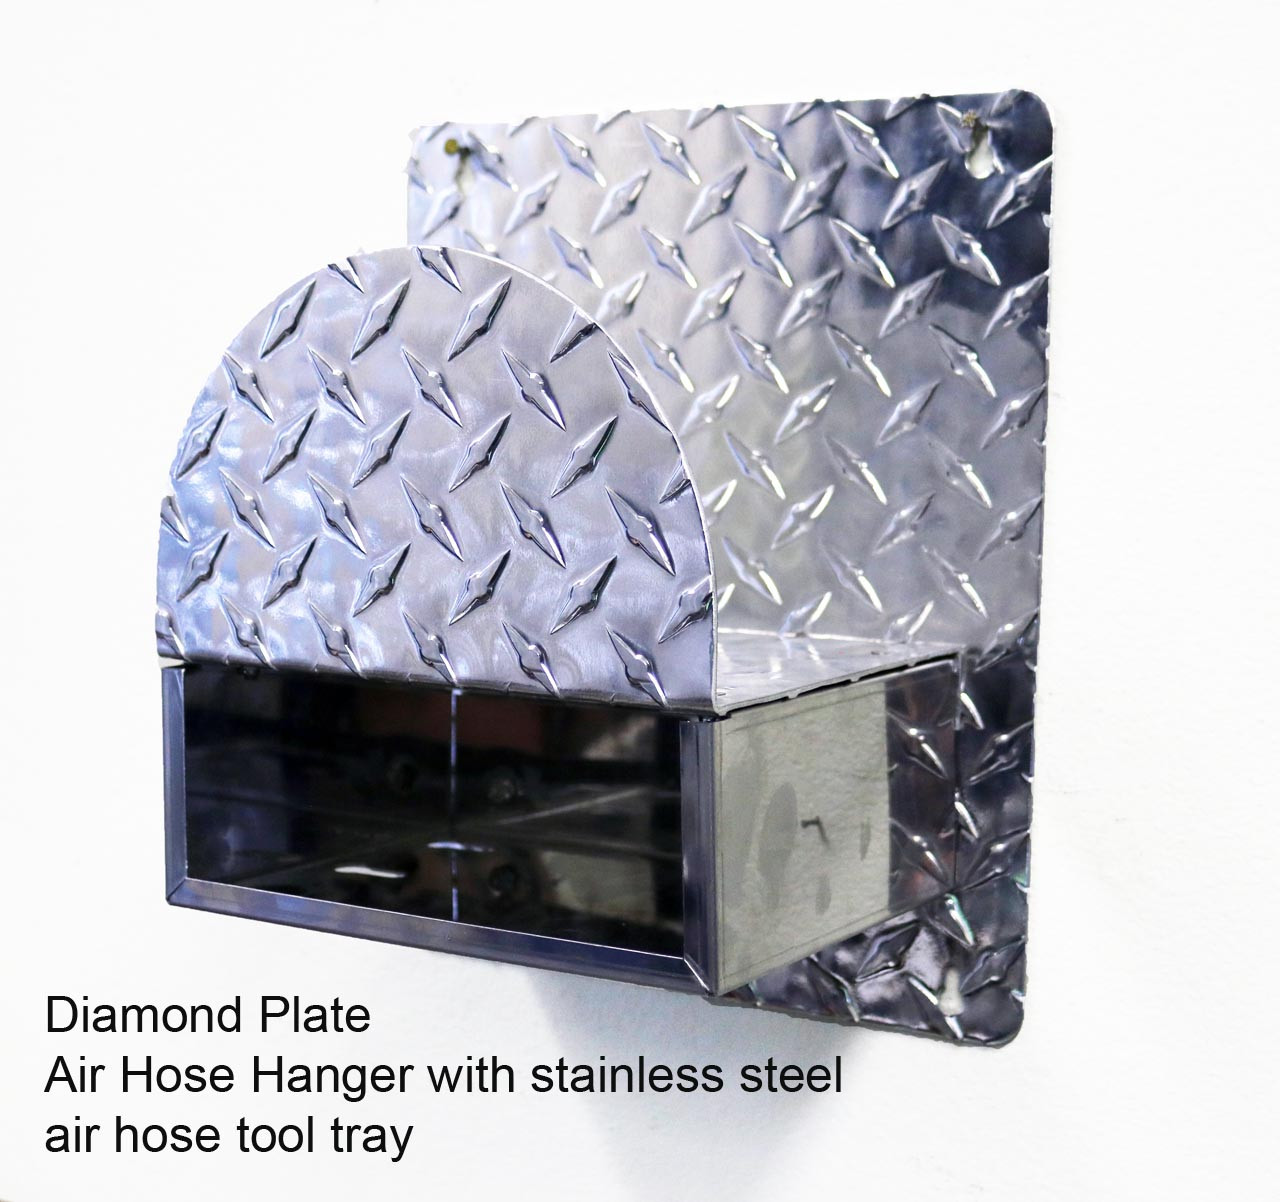 DIamond Plate Aluminum Air Hose with Stainless Steel Accessory Tray (Hose not Included)